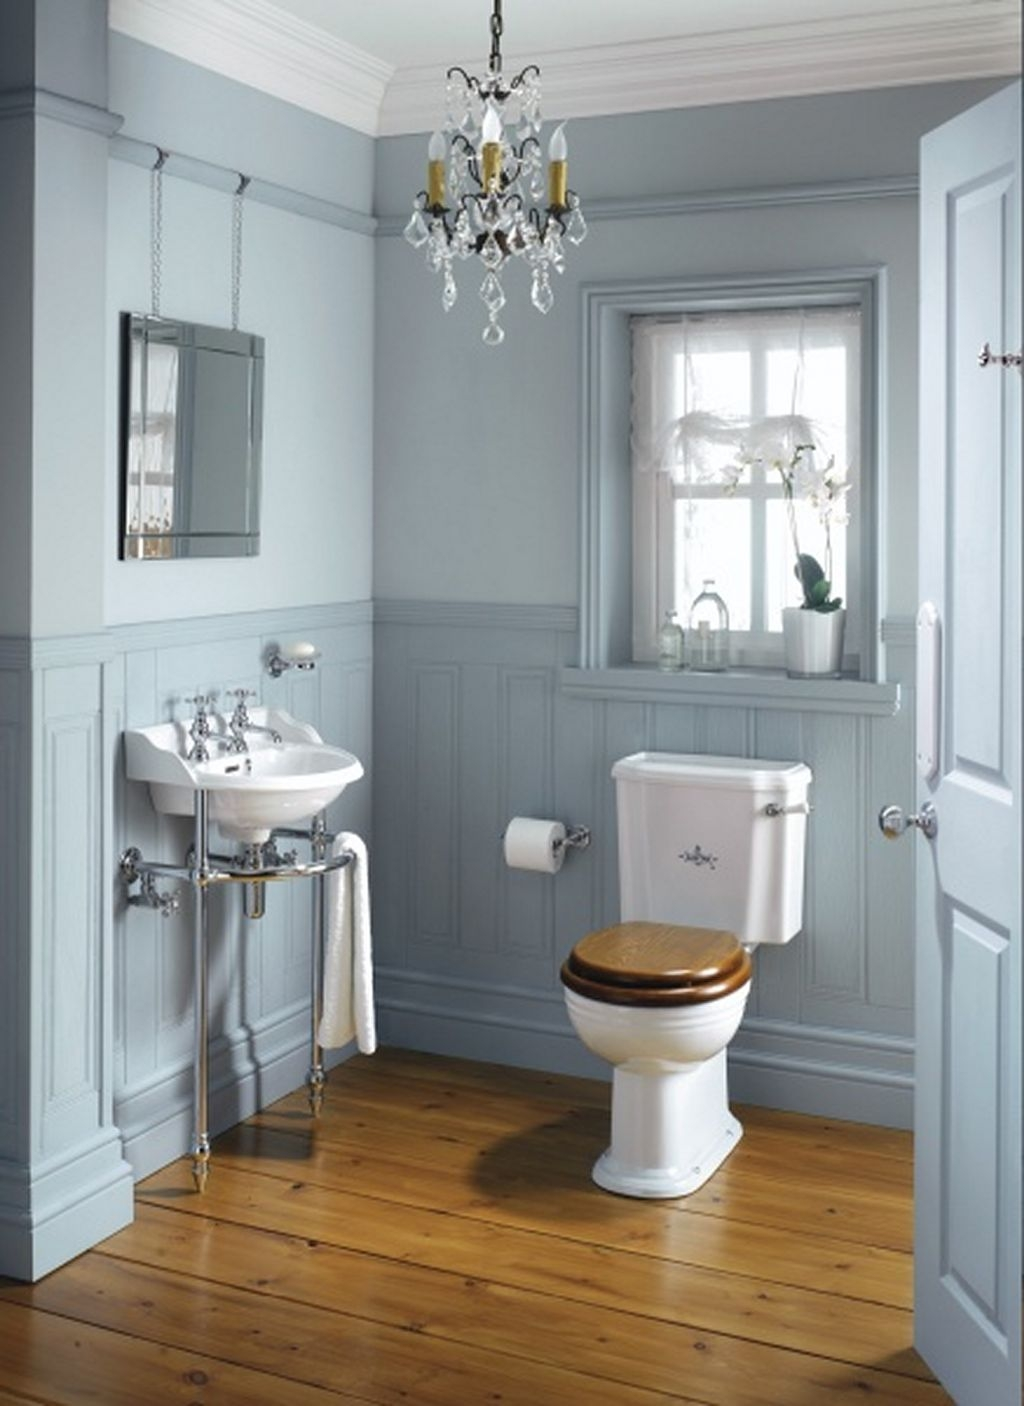 25 Beach Style Bathroom Design Ideas Bathrooms Decor Toilets With Victorian Style Mirrors For Bathrooms (View 4 of 15)